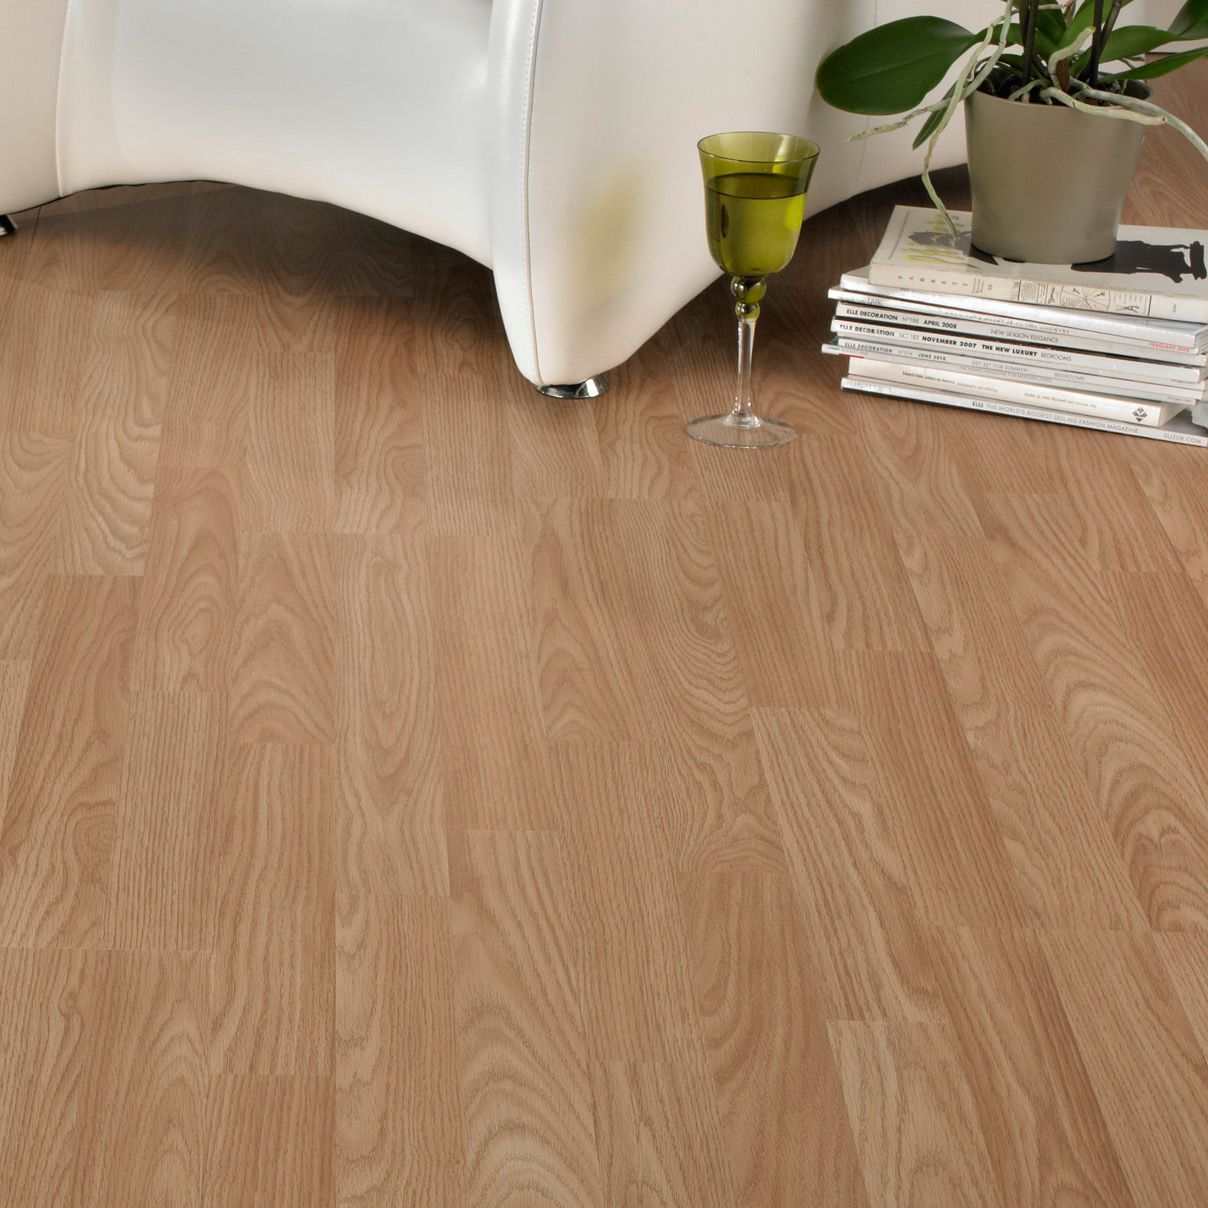 Oak Effect 3 Strip Laminate Flooring M Pack Departments Diy At B Q